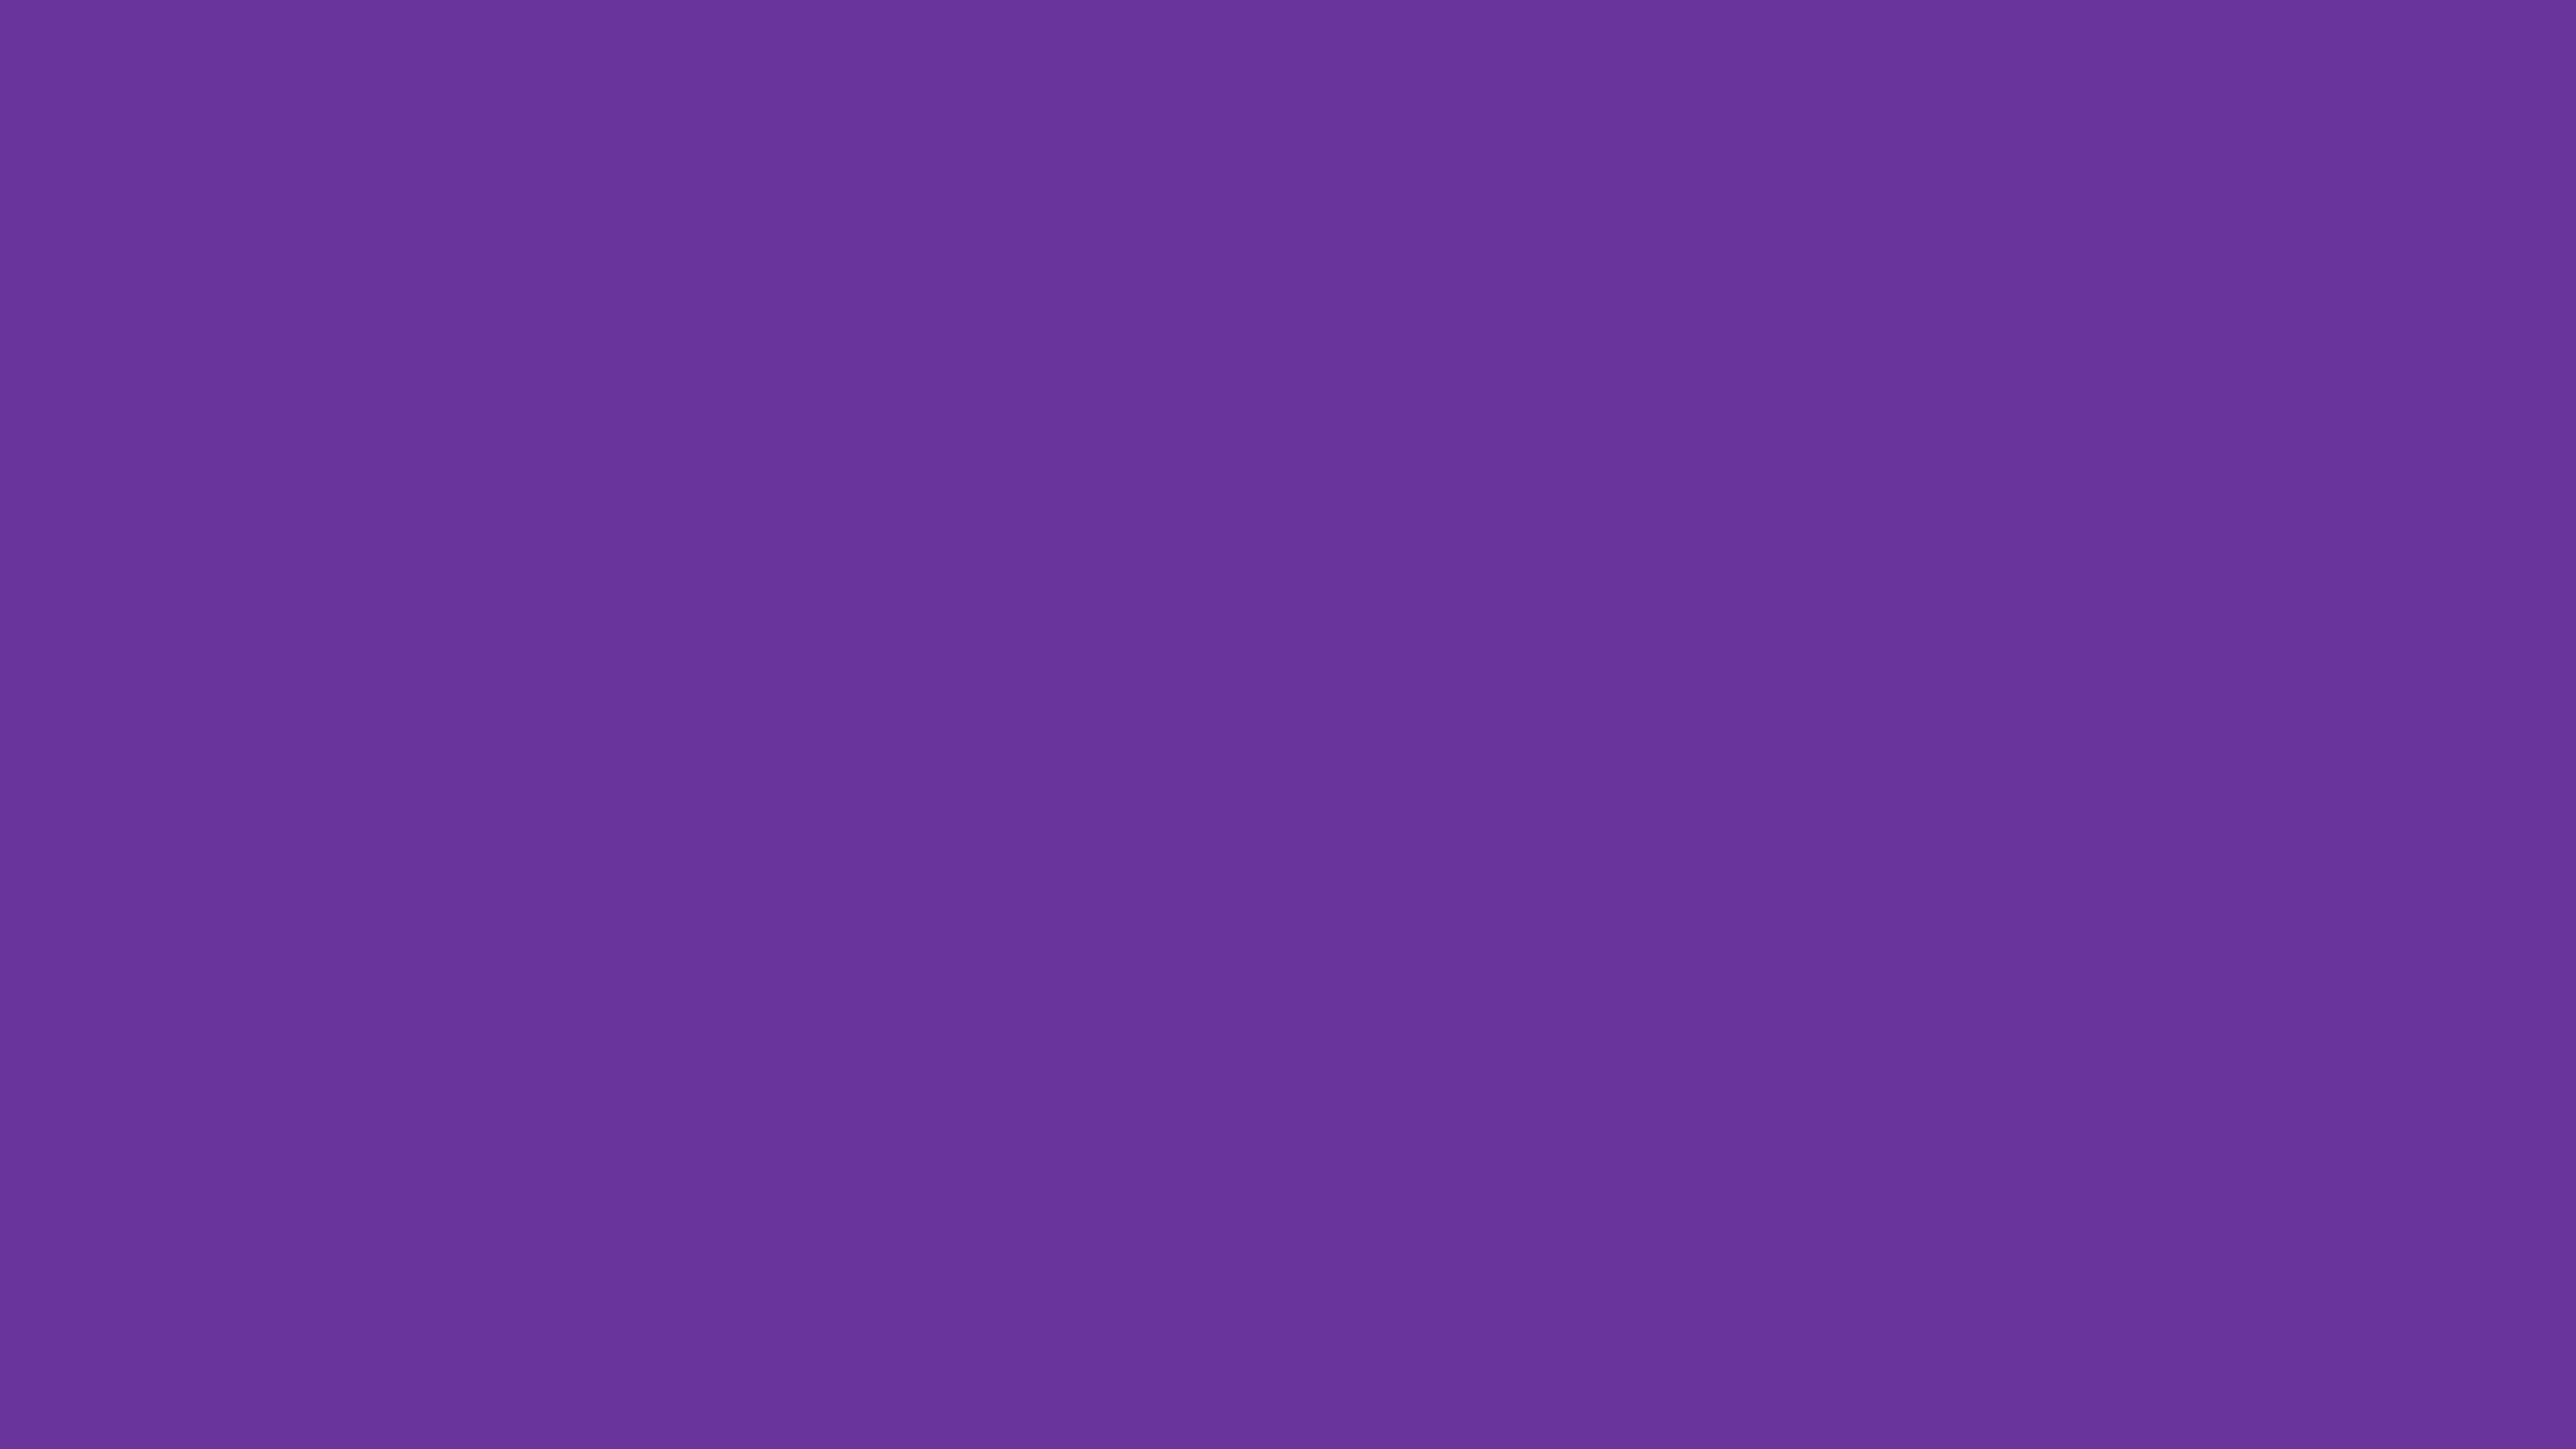 5120x2880 Purple Heart Solid Color Background